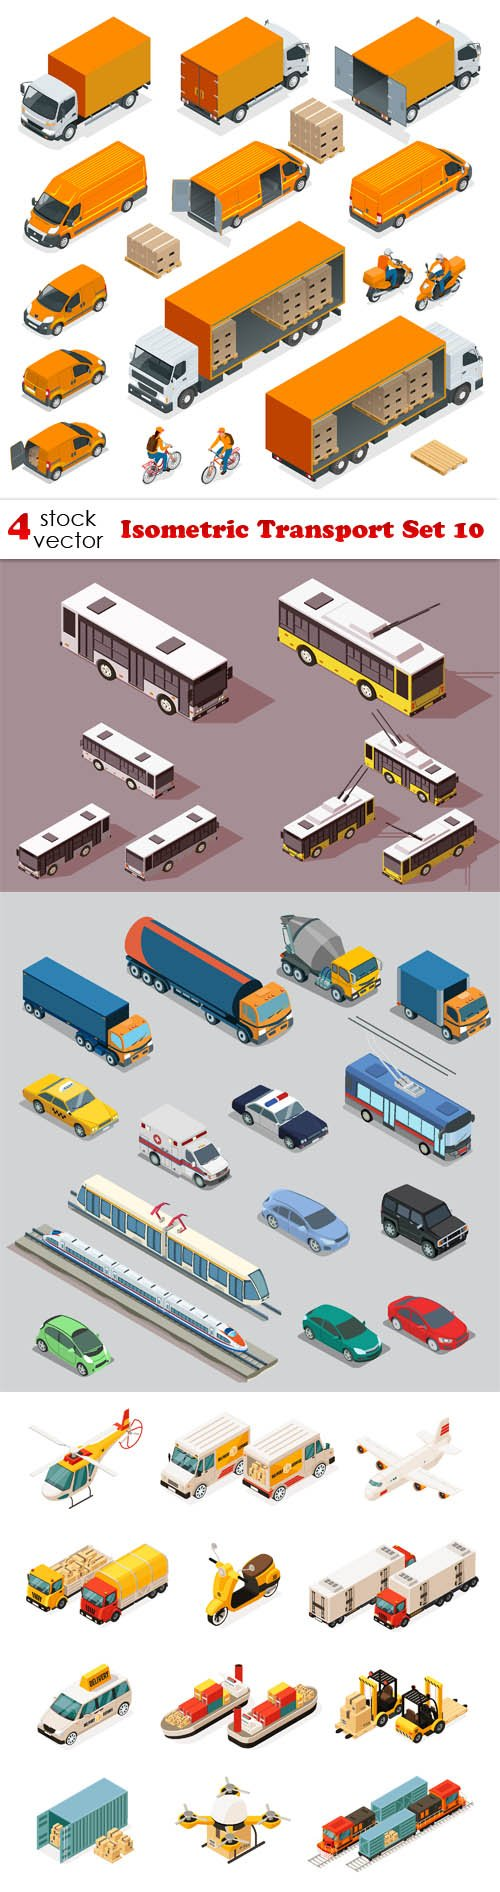 Vectors - Isometric Transport Set 10